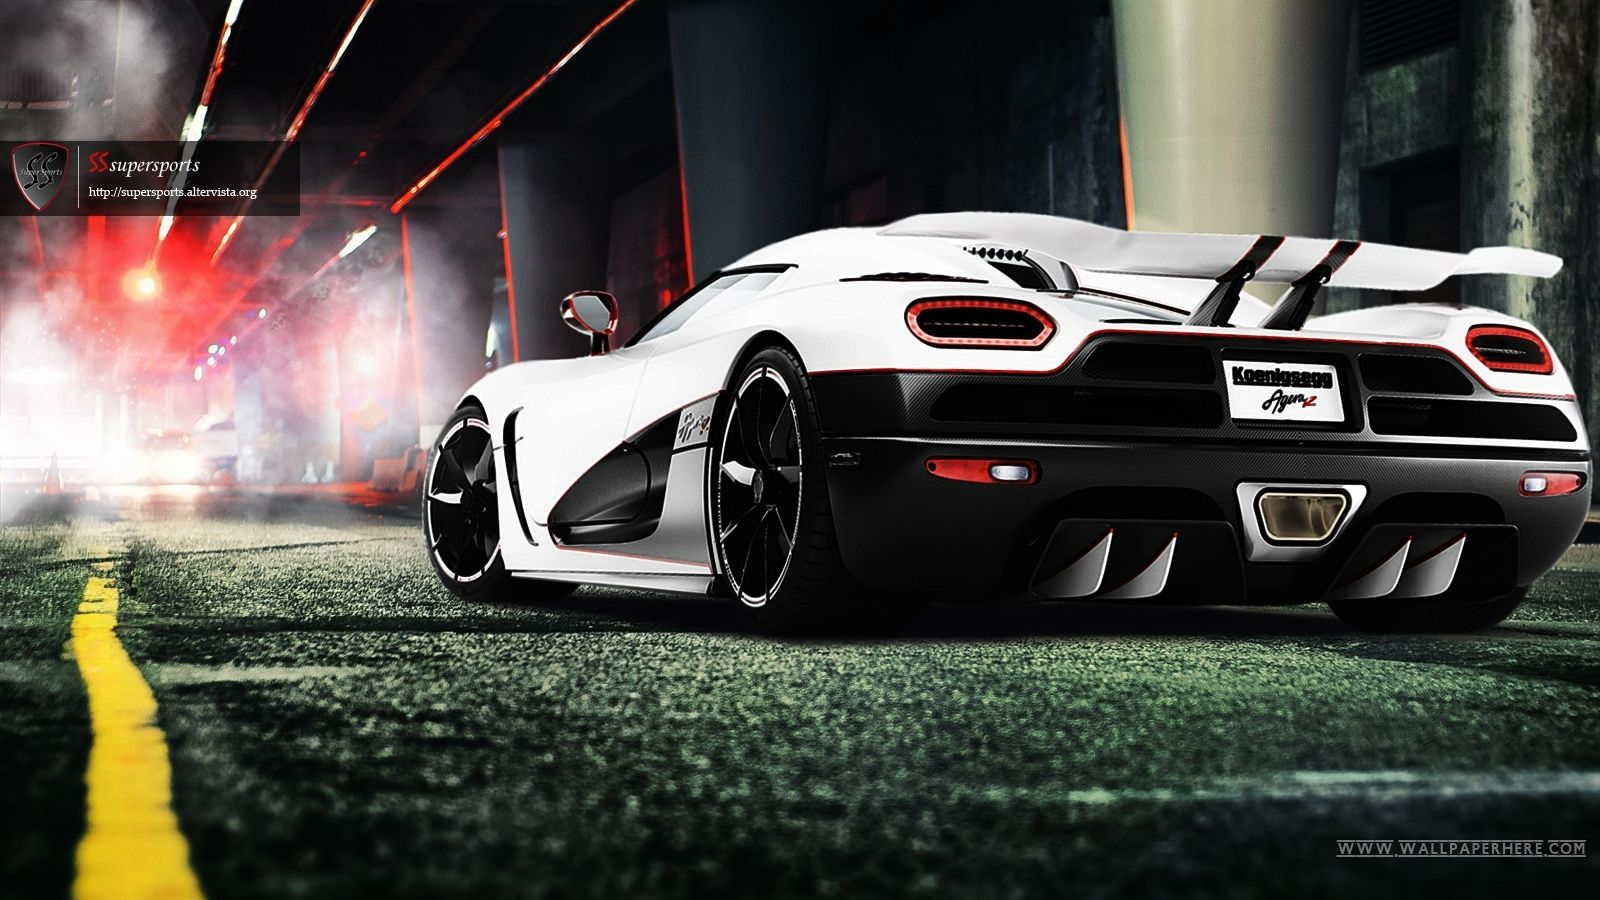 1600x900 Koenigsegg Agera R Wallpaper Download Koenigsegg Car